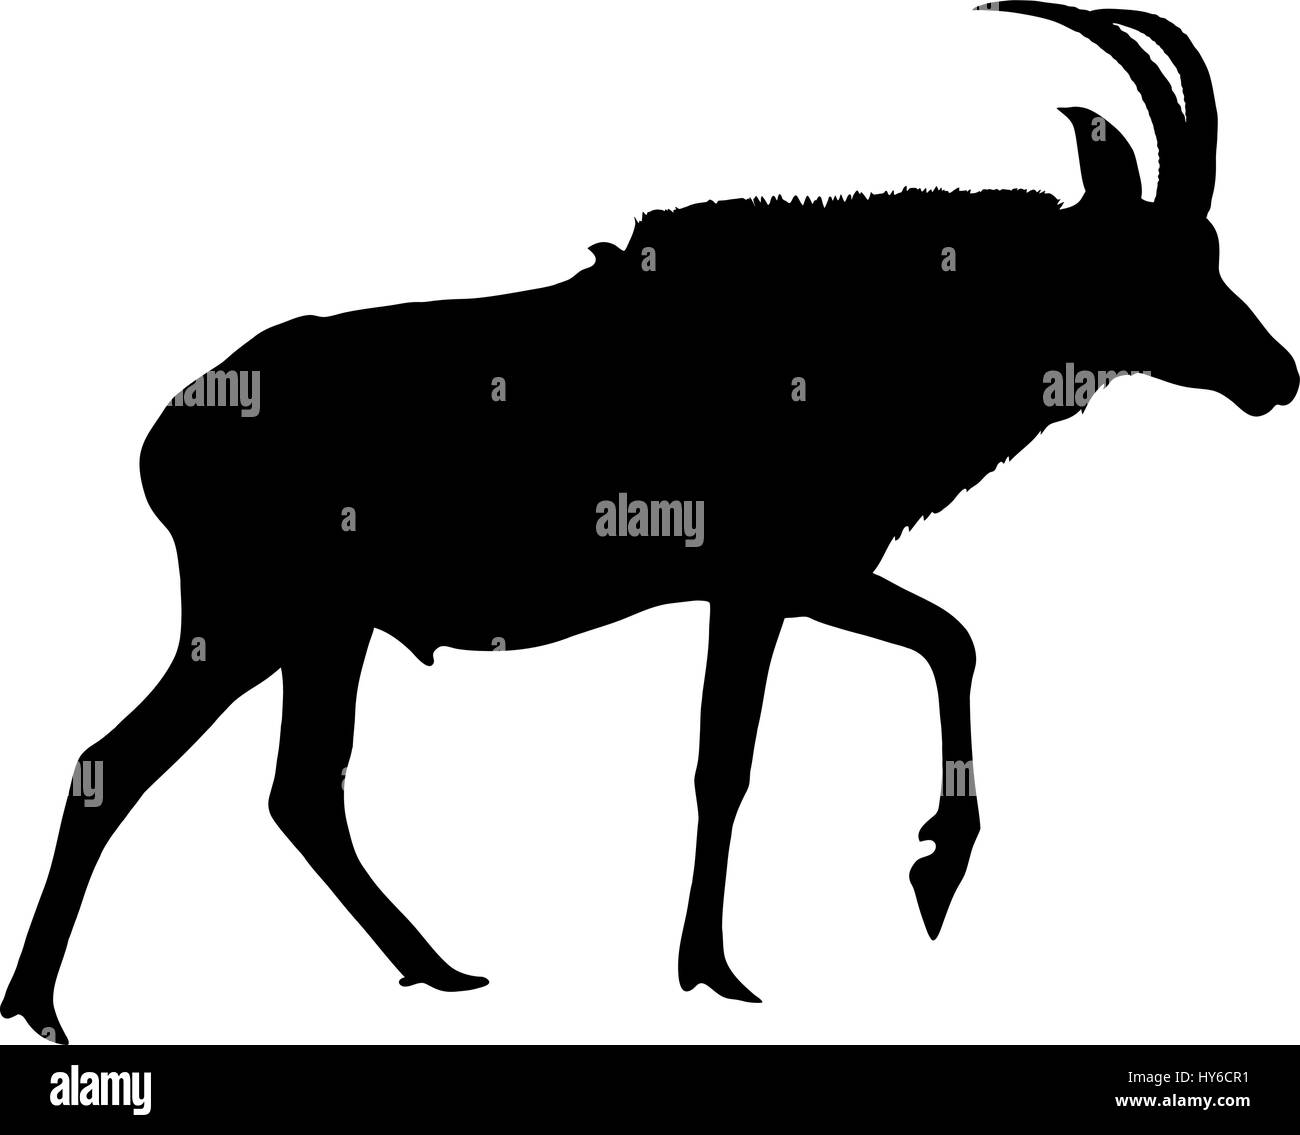 Silhouette Of A Walking Horse Antelope Stock Vector Image Art Alamy